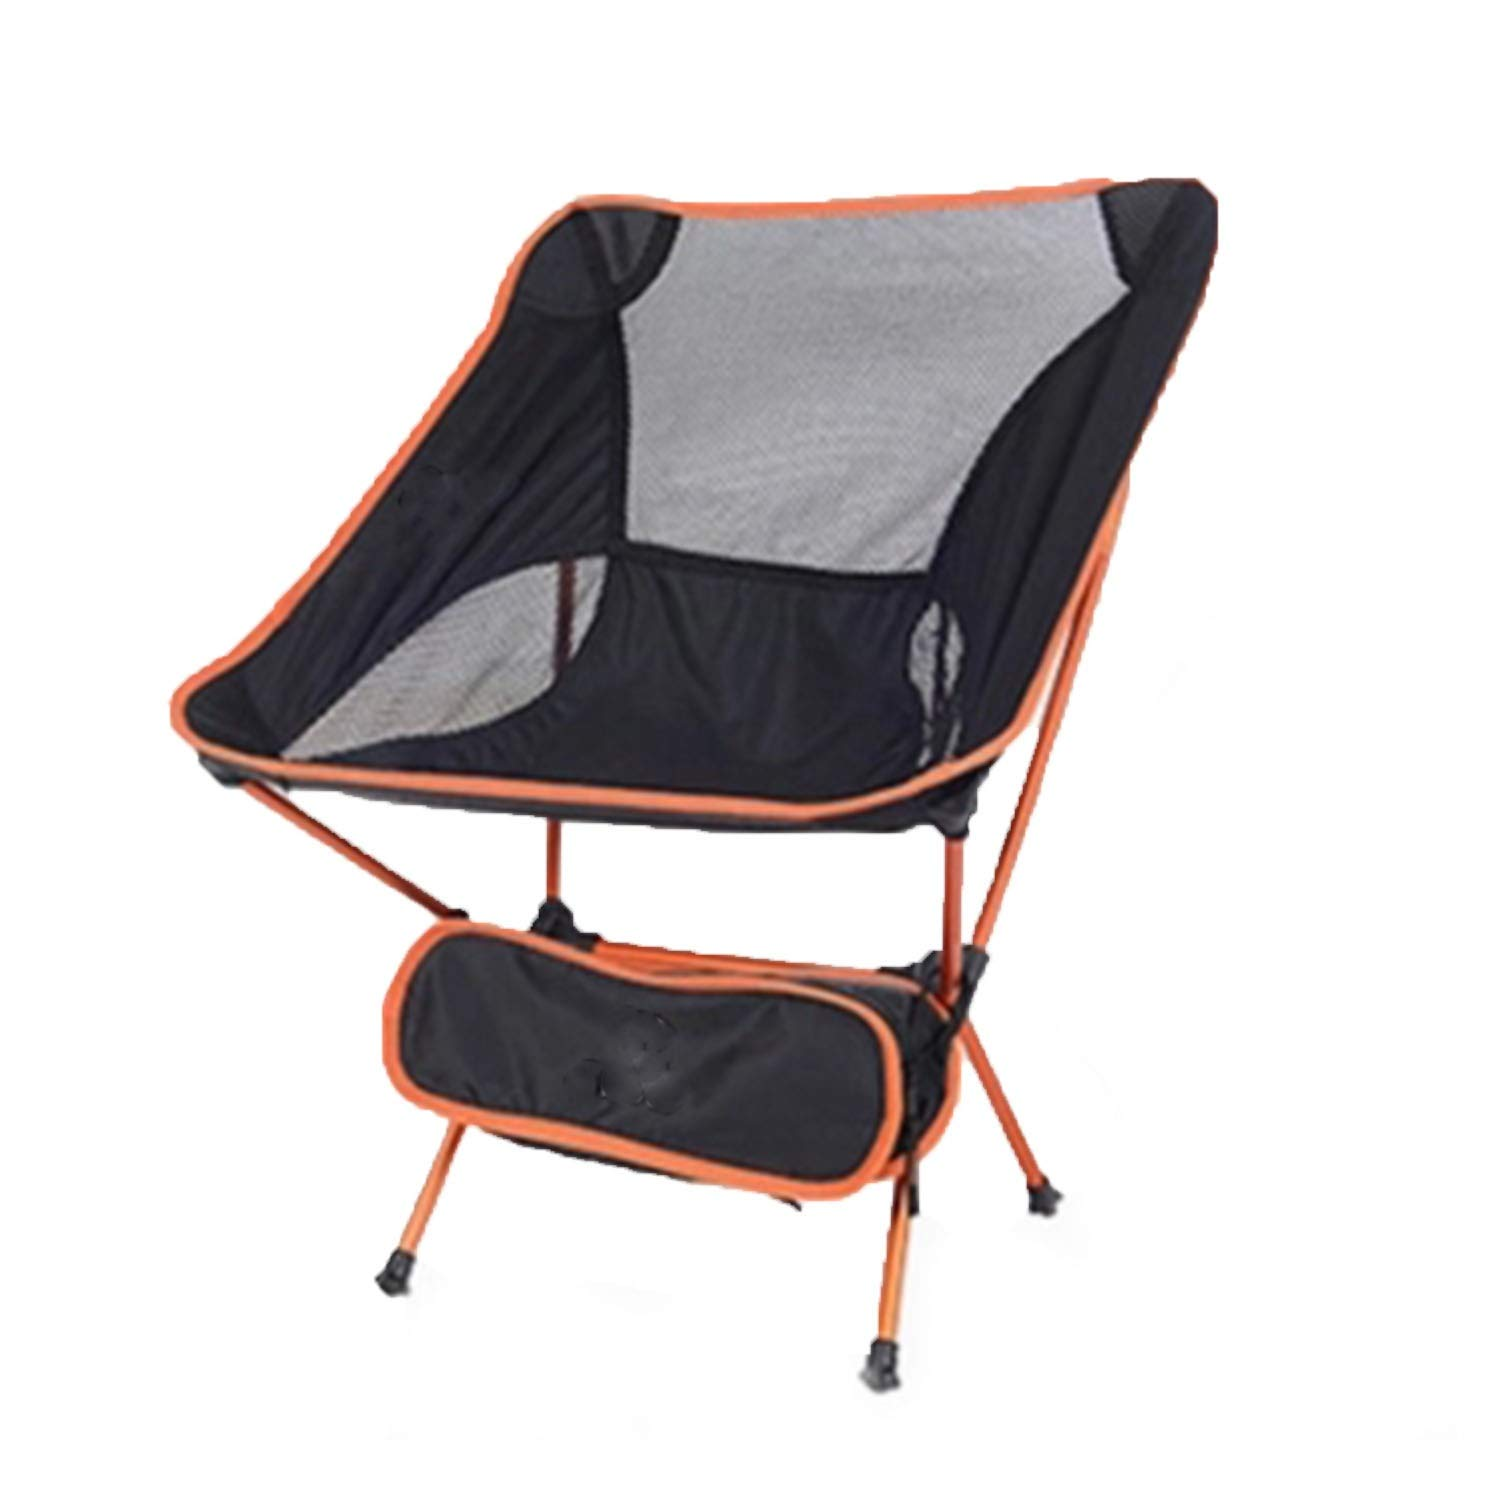 YOZOOE High-Strength Aviation Aluminum Alloy, Folding Beach Moon Chair, Ultra-Light Fishing Stool, Portable Camping Supplies (Color : Orange) by YOZOOE